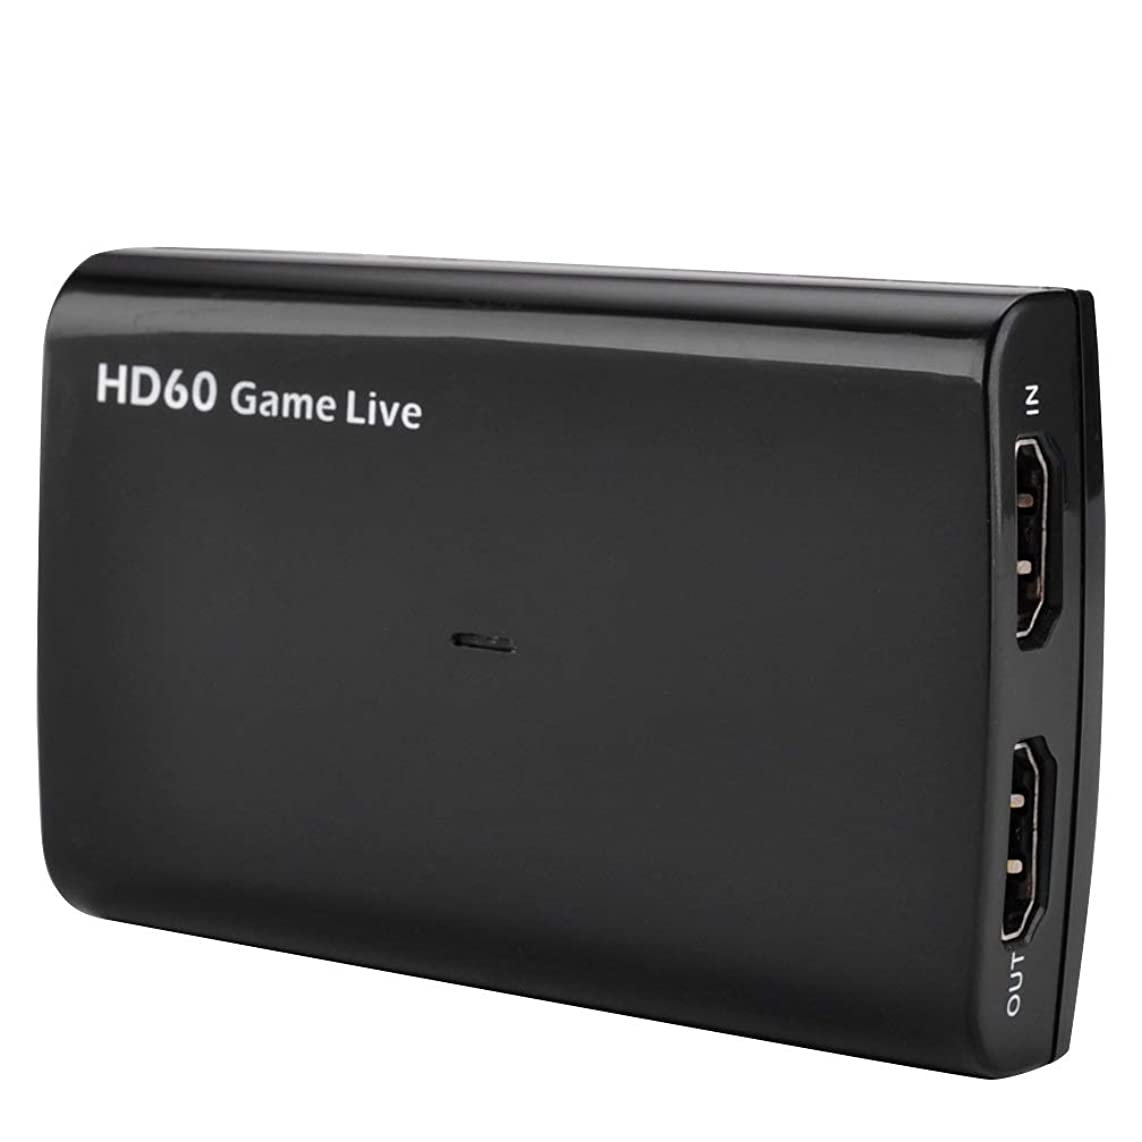 Deekec Video Game Capture Adapter HD60 S - Stream and Record in 1080p60